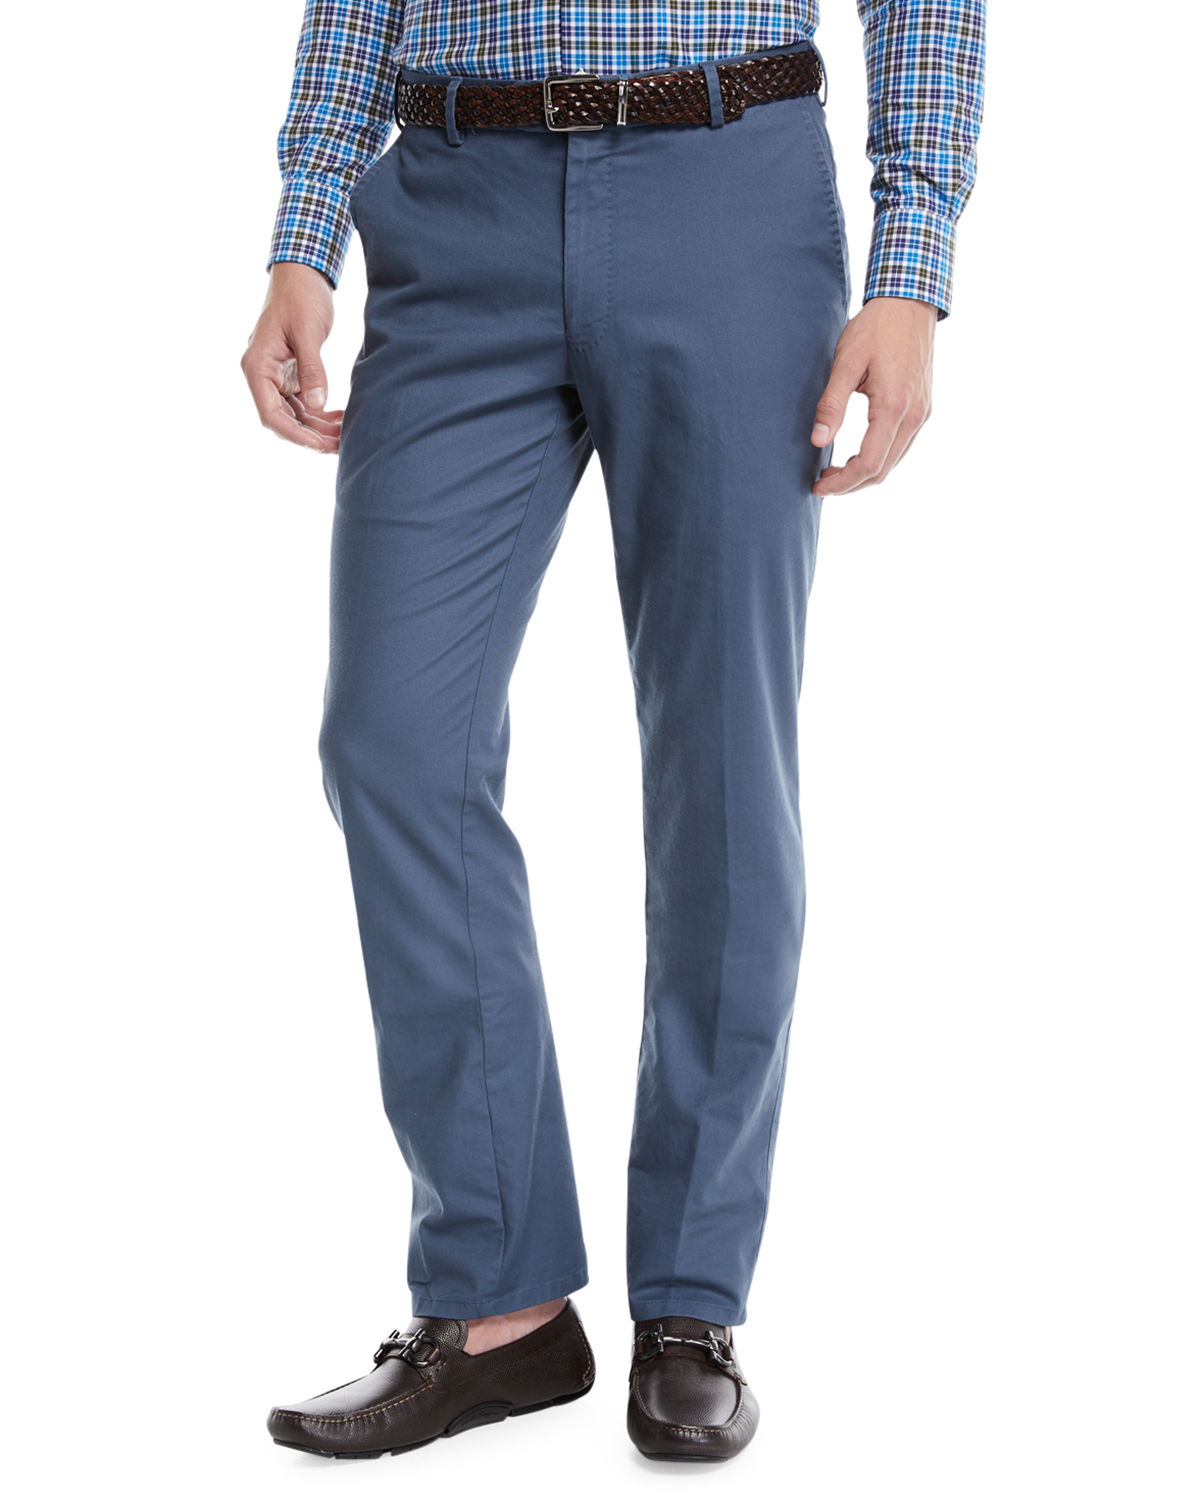 Men's Soft Touch Twill Trousers